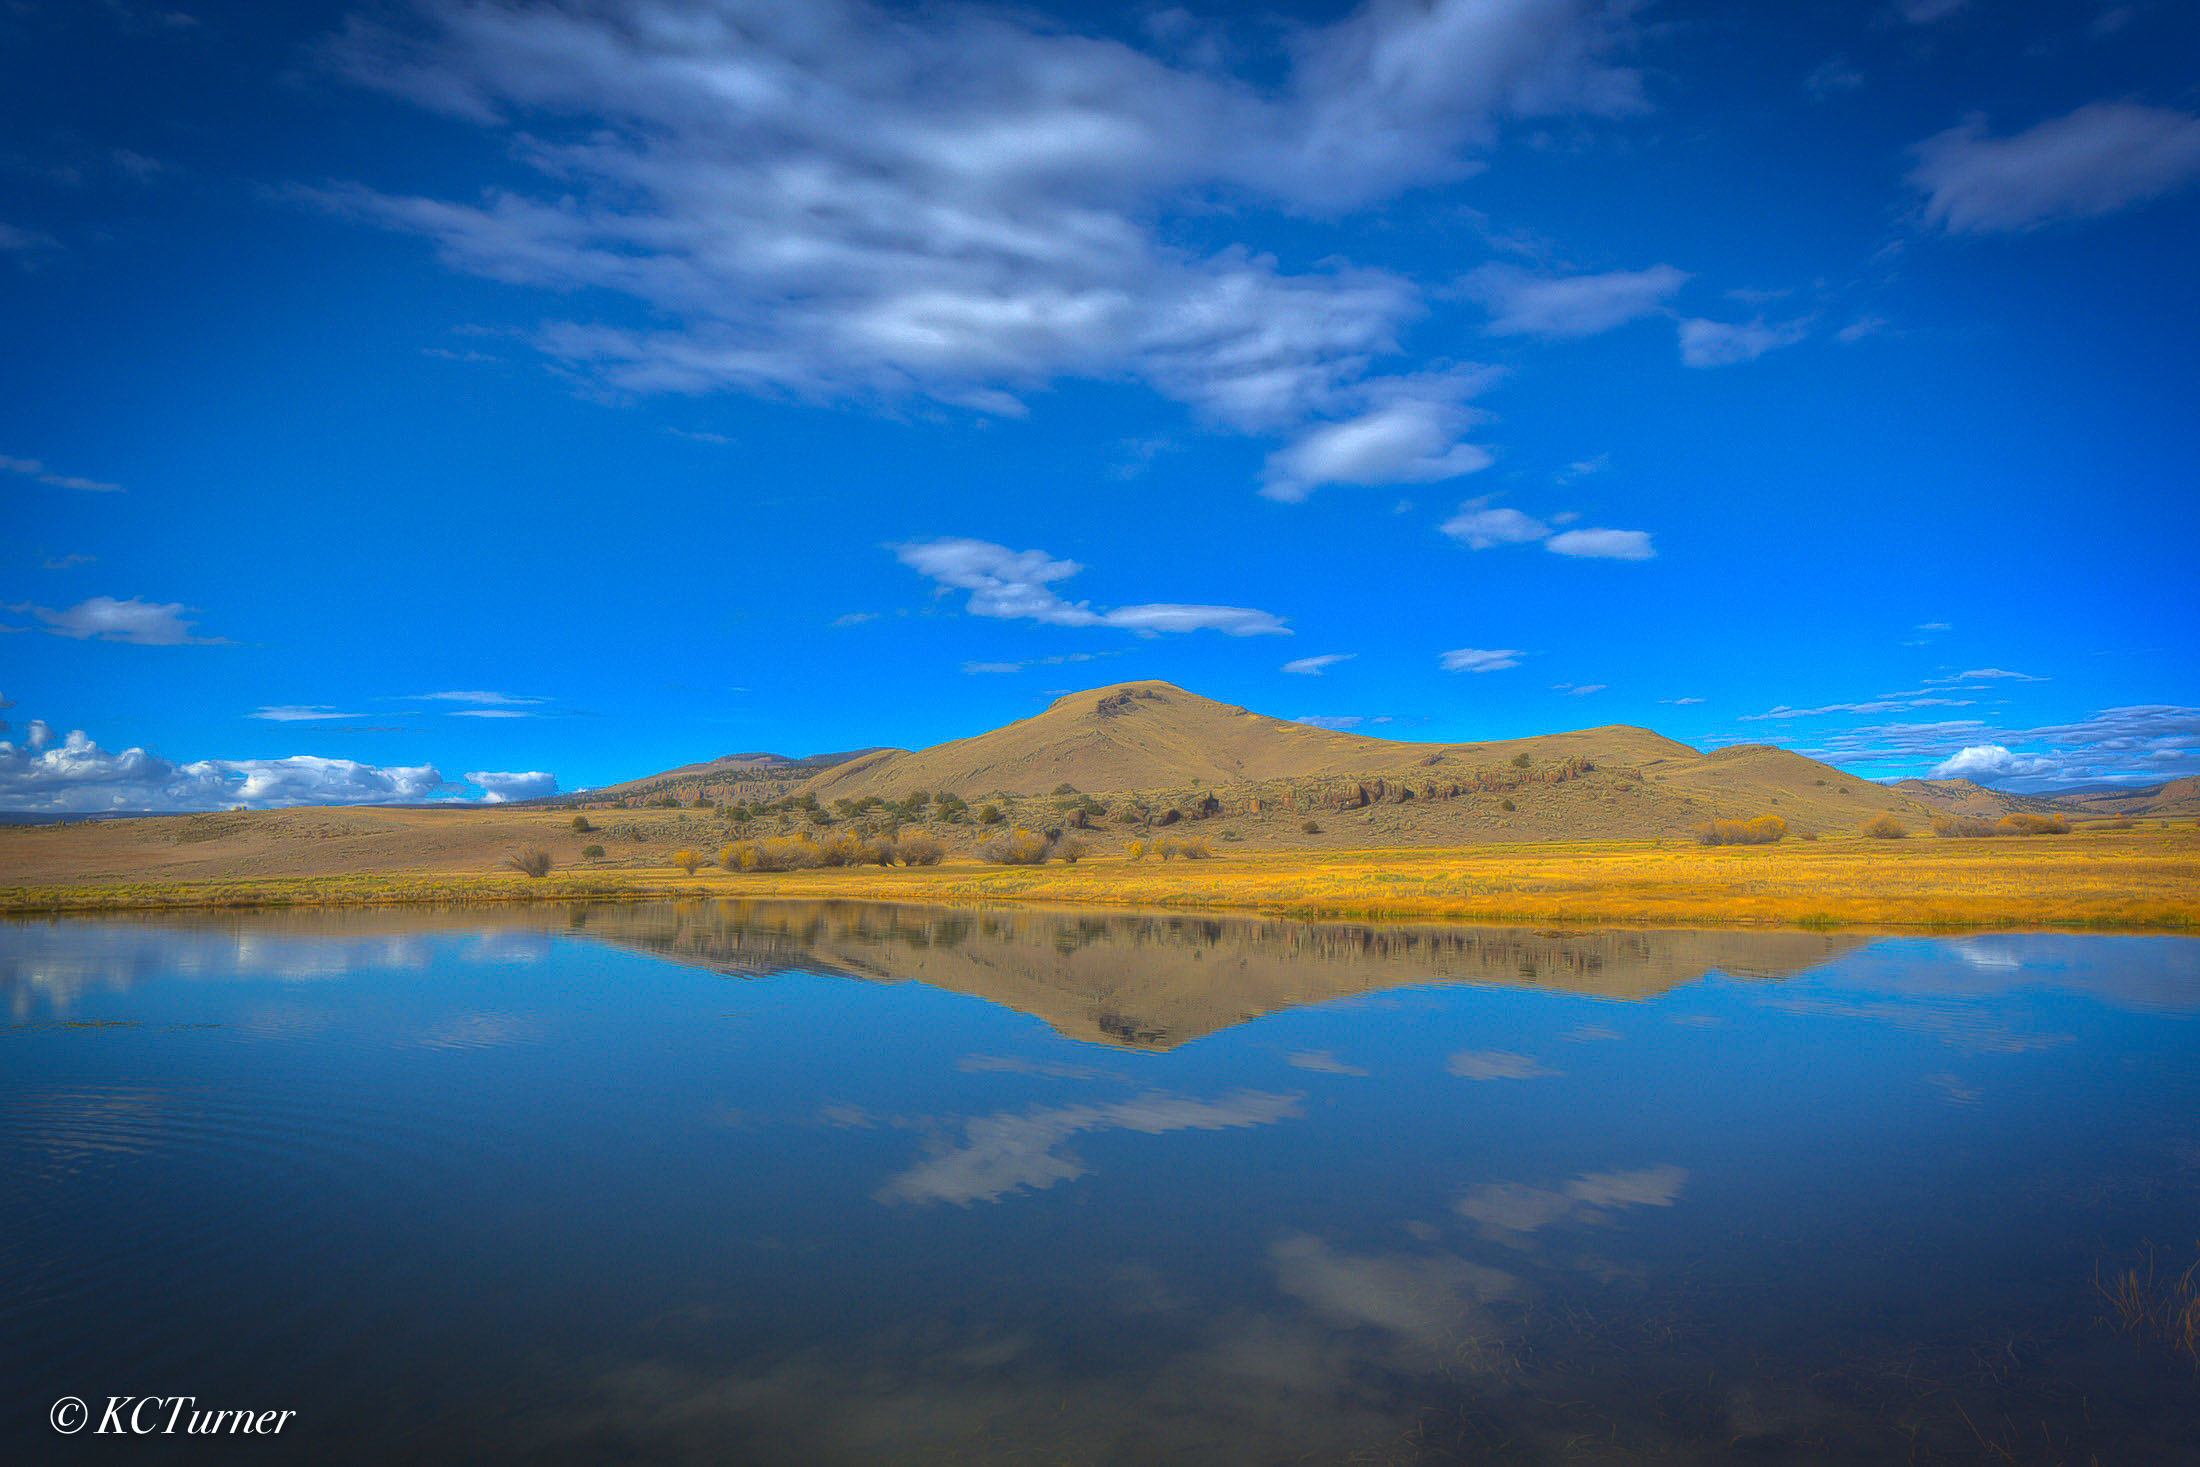 classic, photogenic, landscapes, sky, mountains, water, dreamscape, captured,, Sargents Mesa, Rio Grande National Forest, panorama, photo